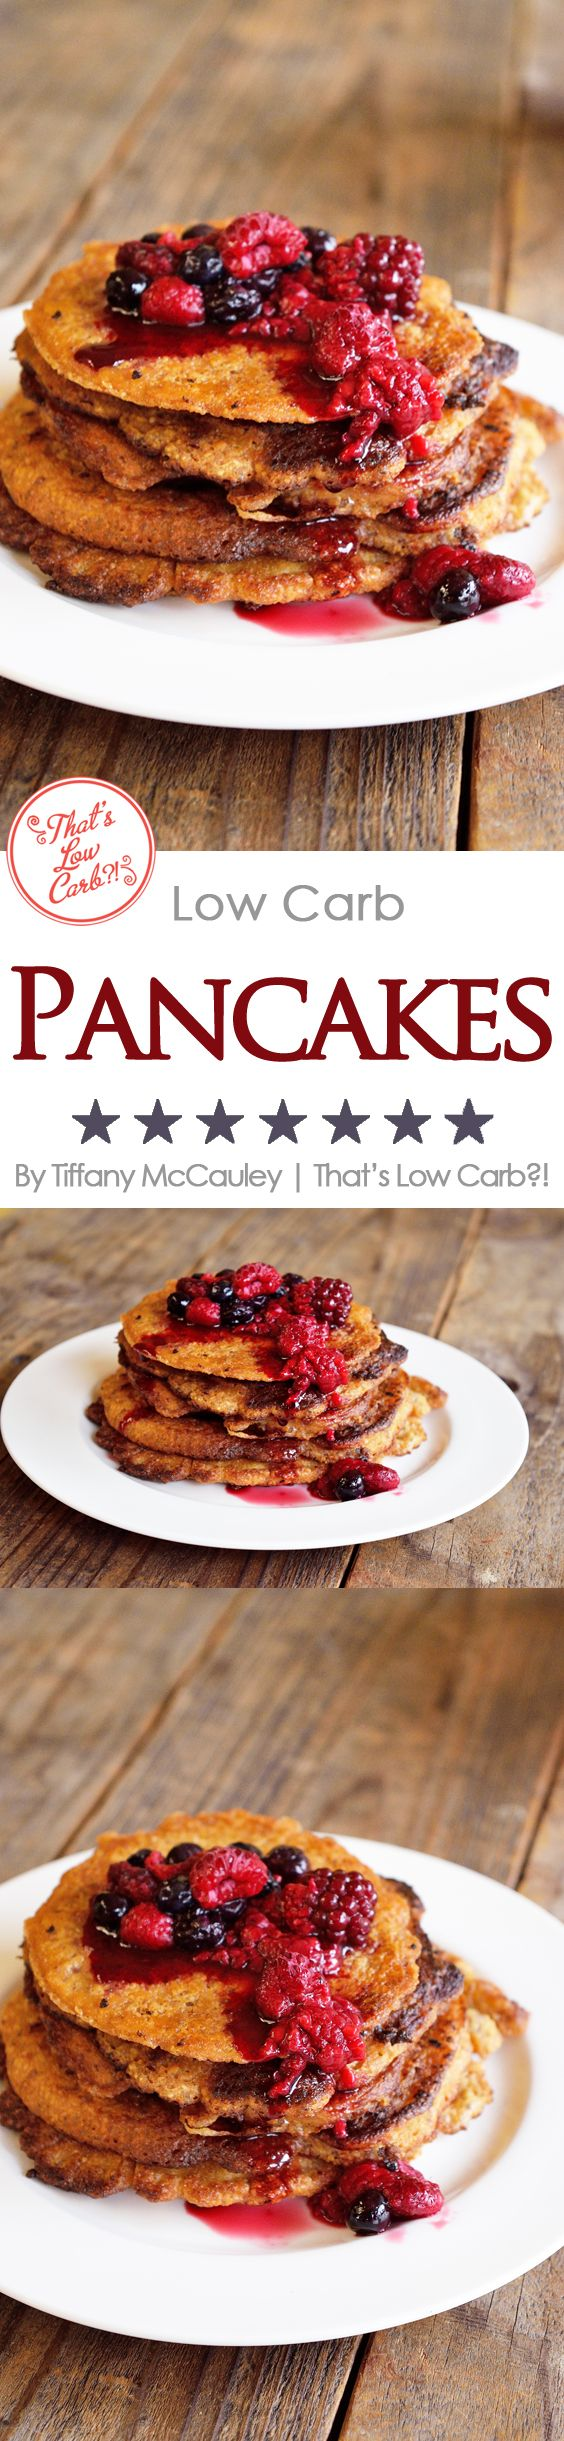 Low Carb Recipes | Low Carb Pancakes | Low Carb Breakfast Recipes | Recipes